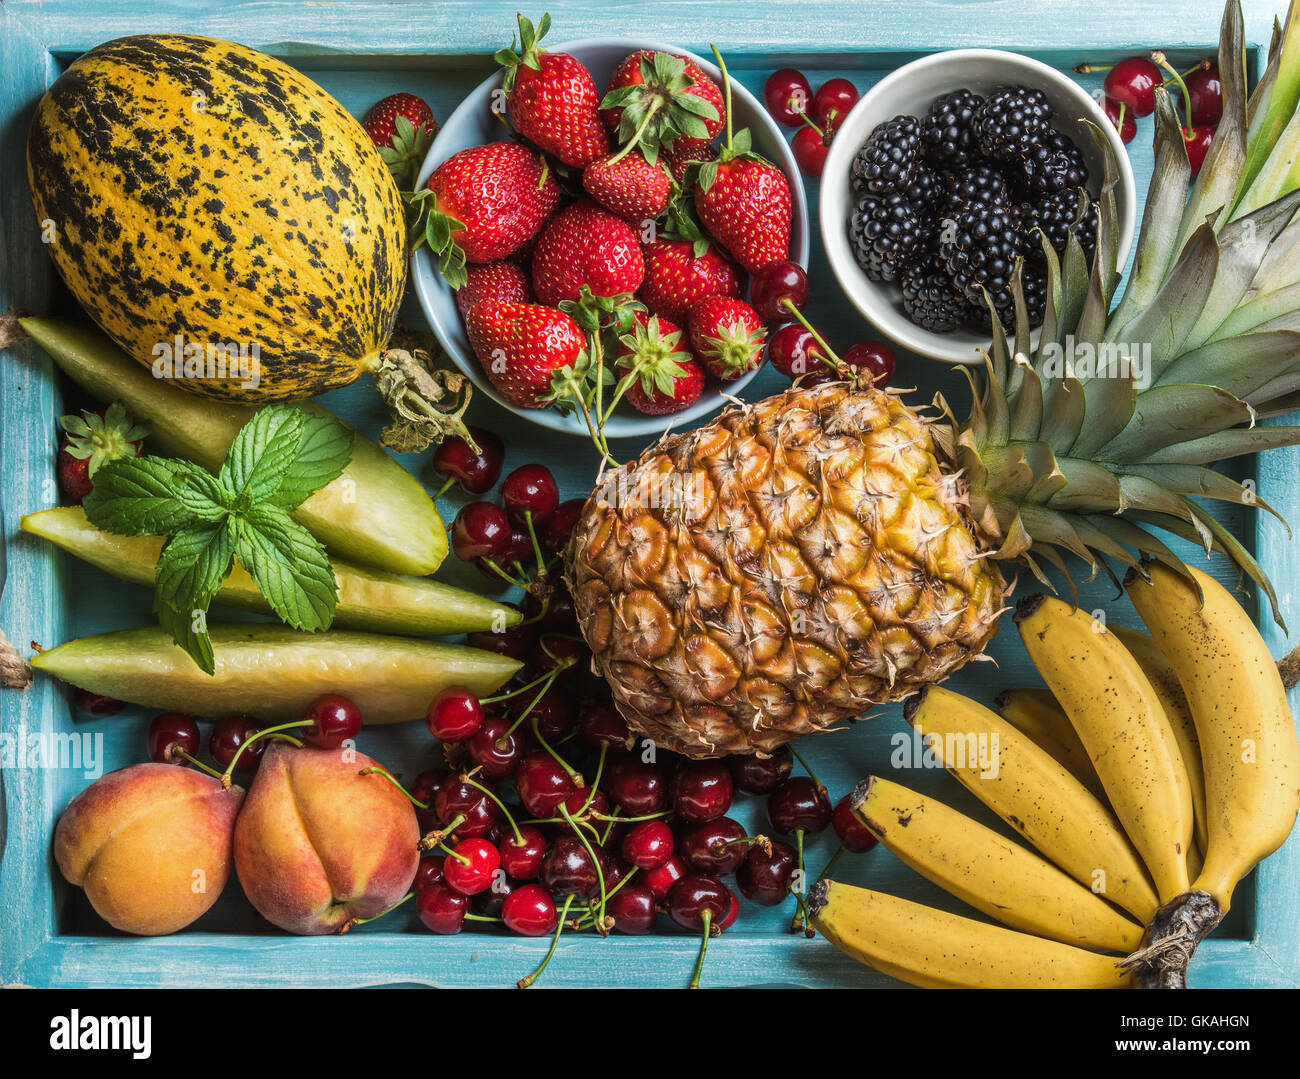 Healthy summer fruit variety. Sweet cherries, strawberries, blackberries, peaches, bananas, melon slices and mint - Stock Image